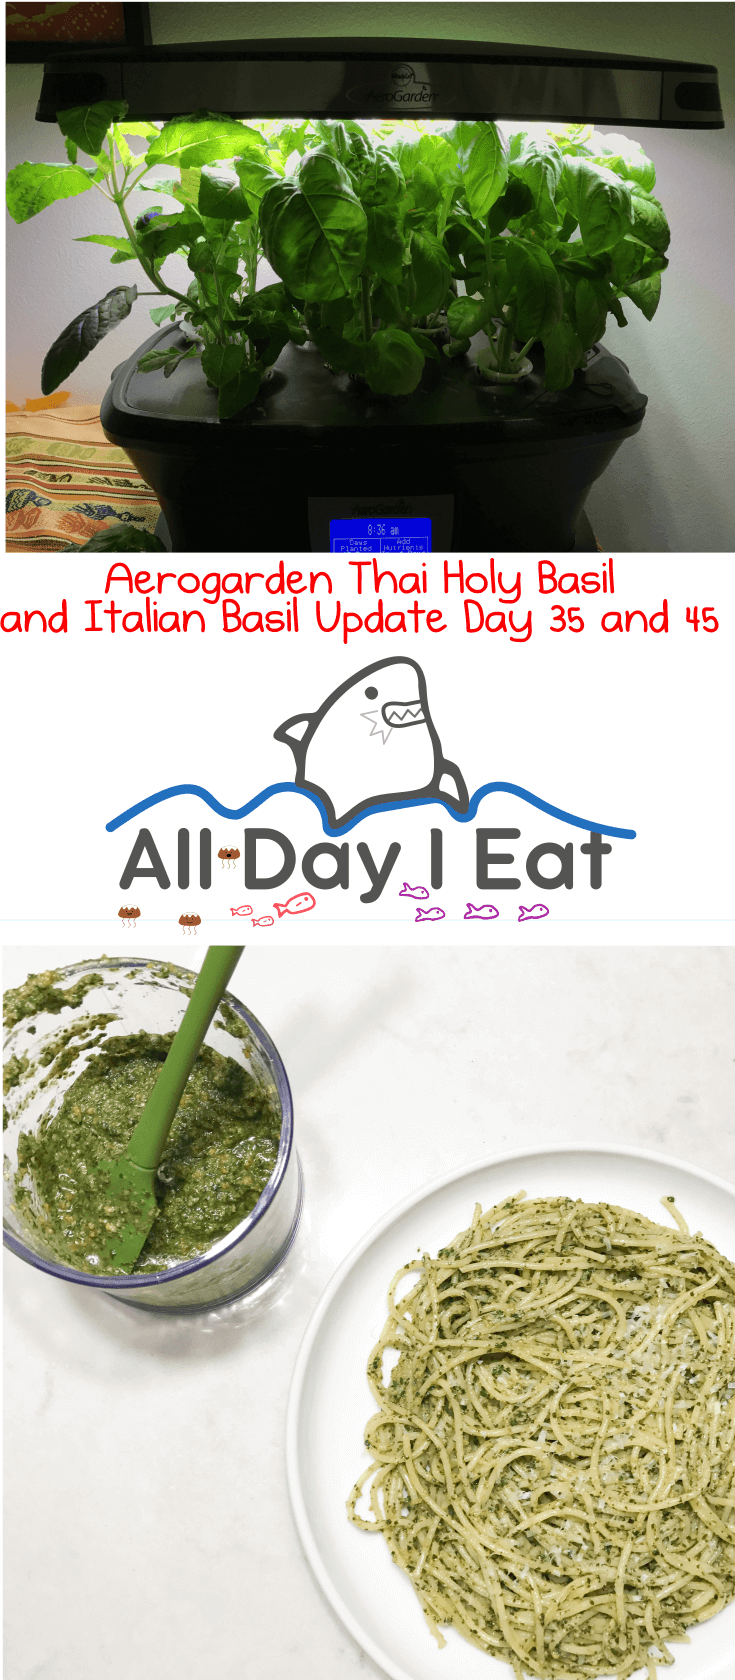 Aerogarden Thai Holy Basil (tulsi) and Italian Basil Update Day 35 and 45. I finally got to take my first harvest of Italian basil and made pesto with it. Can't wait to make Thai Basil Chicken with this thing!!| www.alldayieat.com